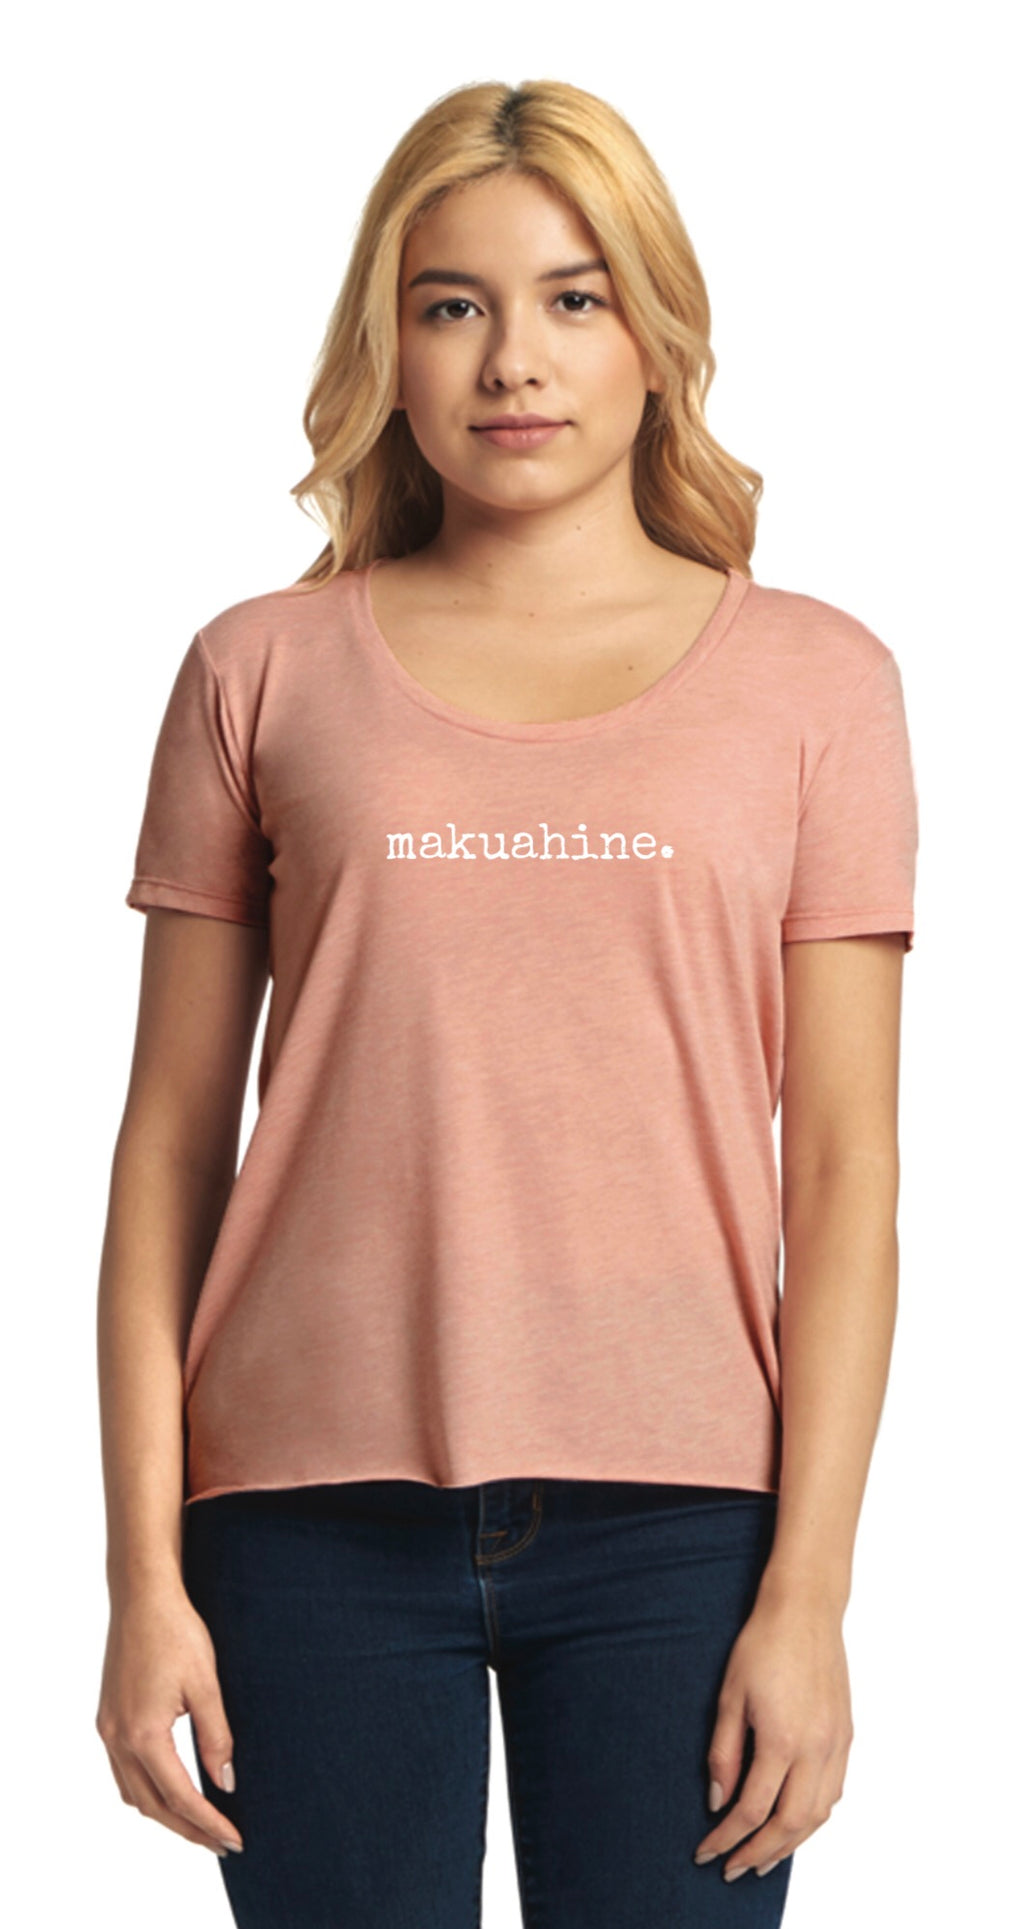 makuahine. (mother) scoop neck T-Shirt - ADULT Sizes - 2 Colors